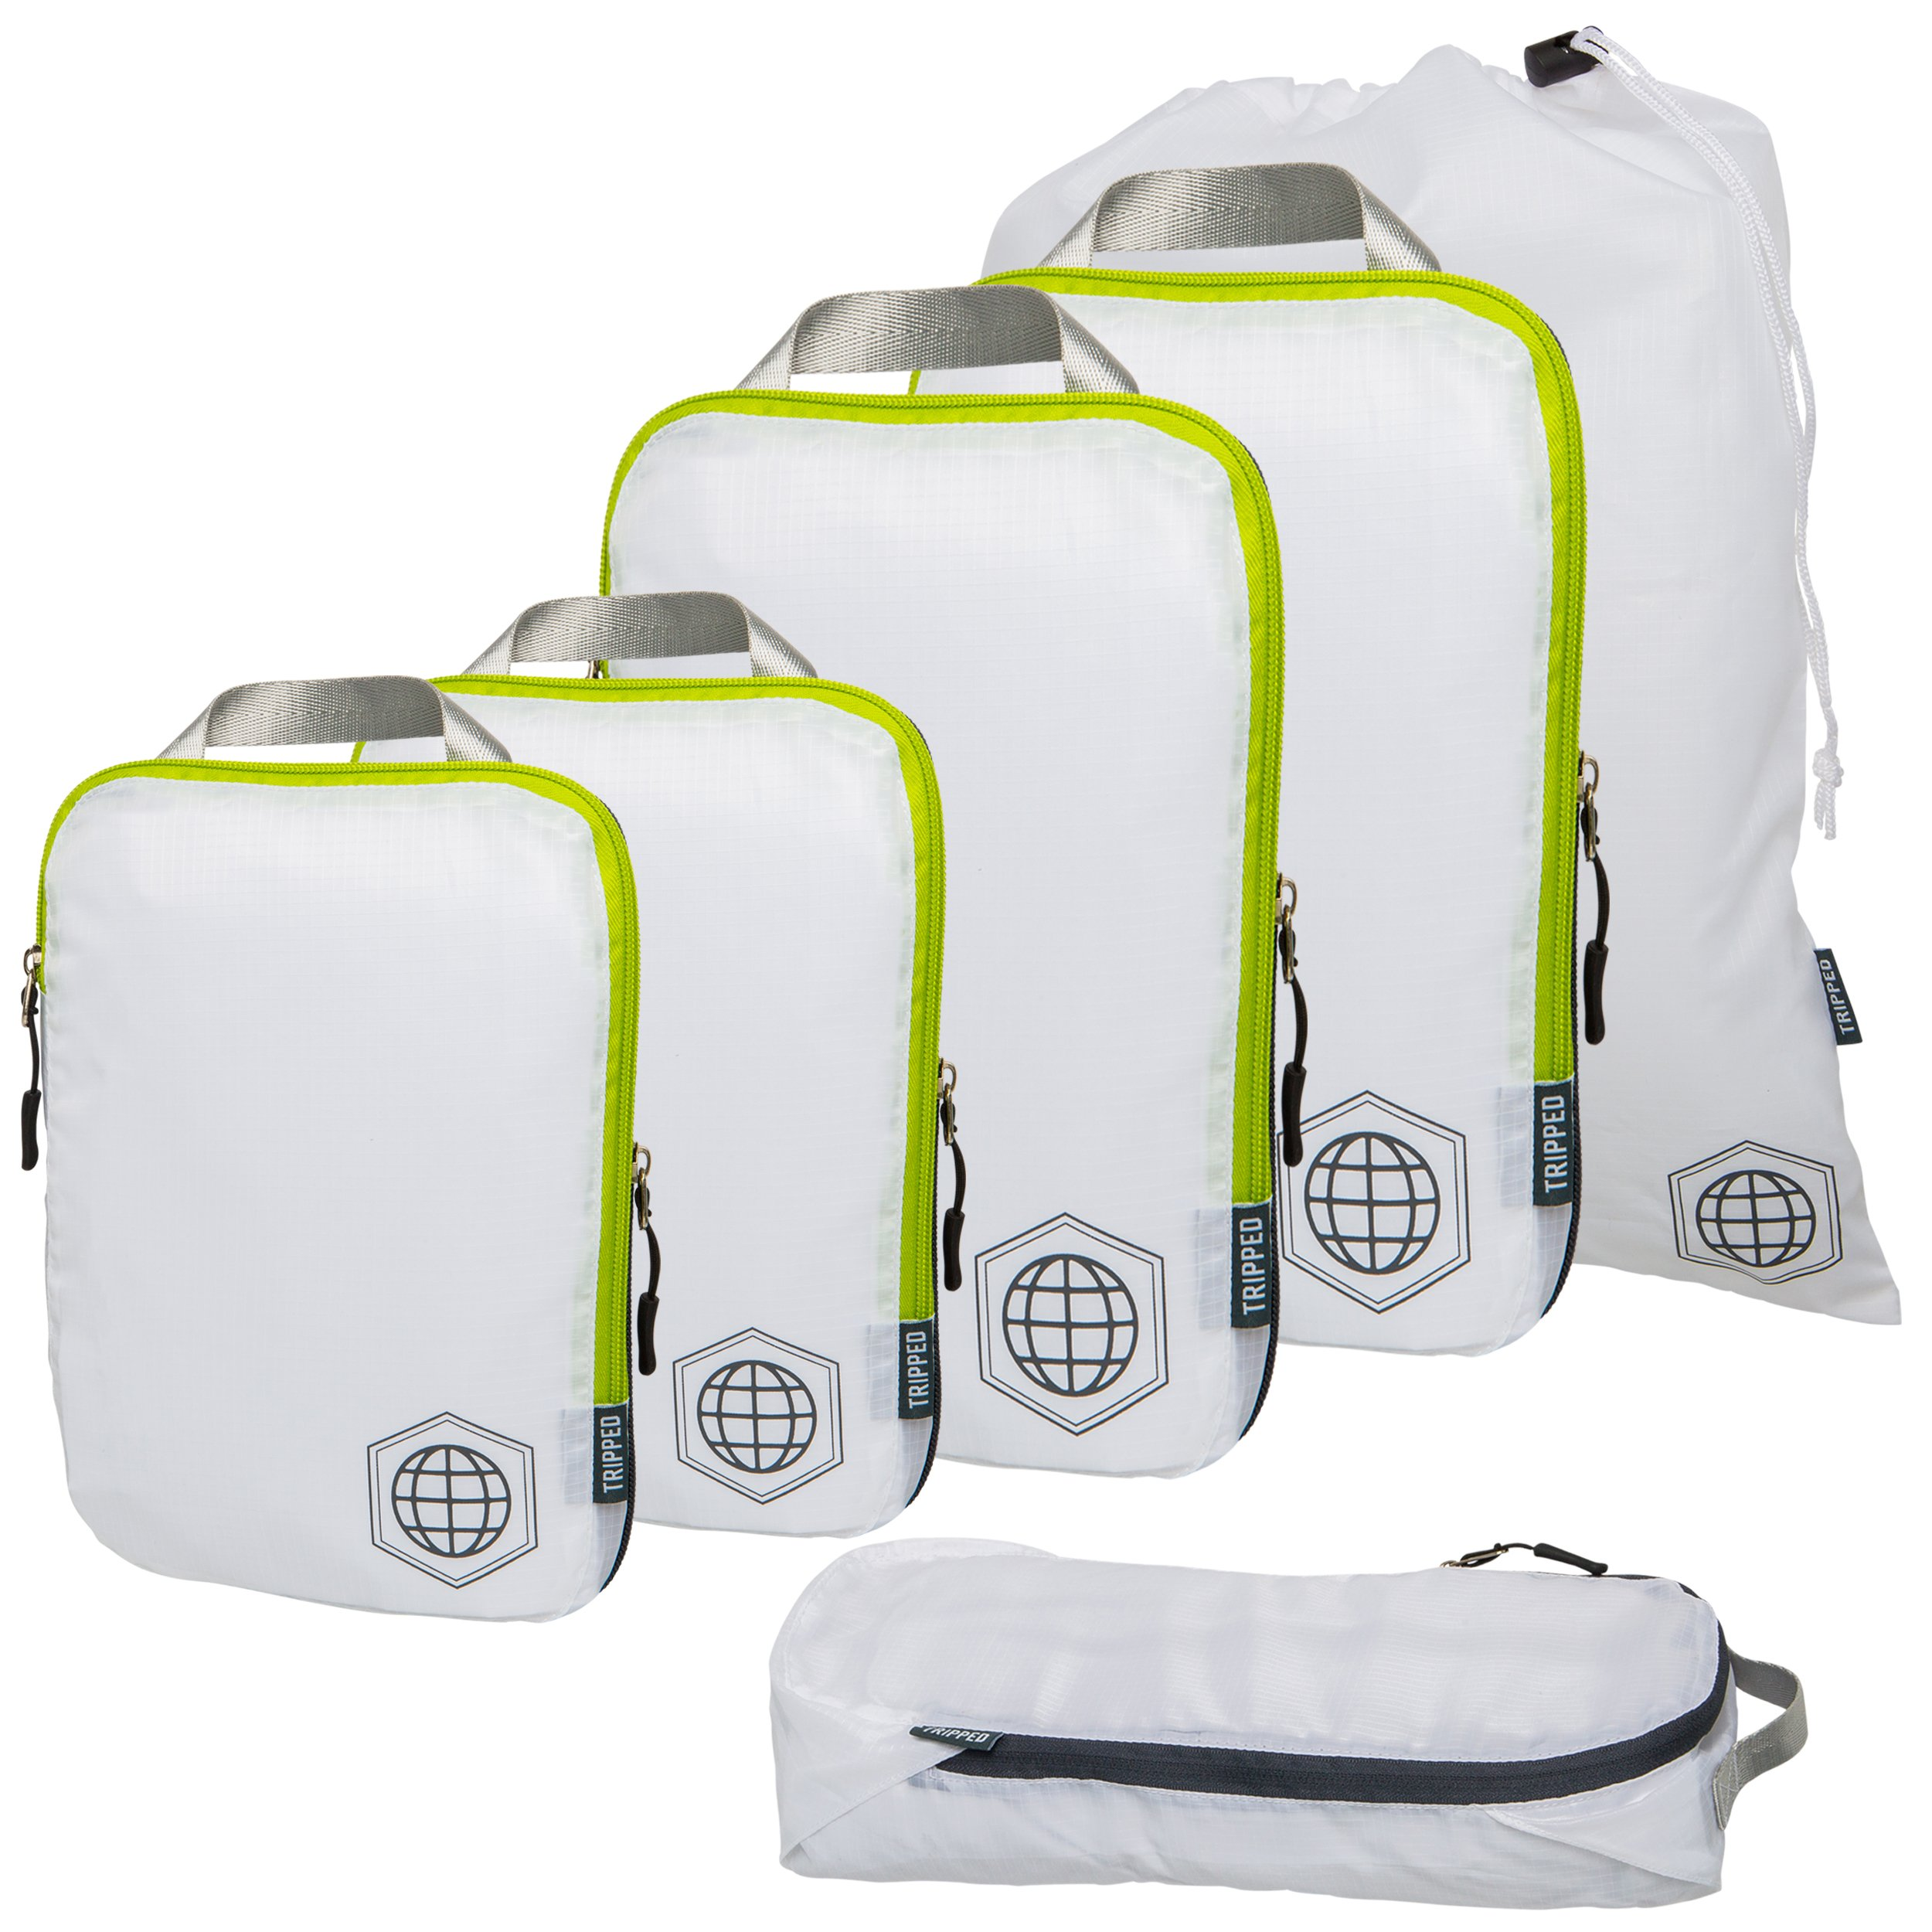 Packing Cubes Travel Organizer- Compression Travel Bags (White and Green, 6 Piece Set)